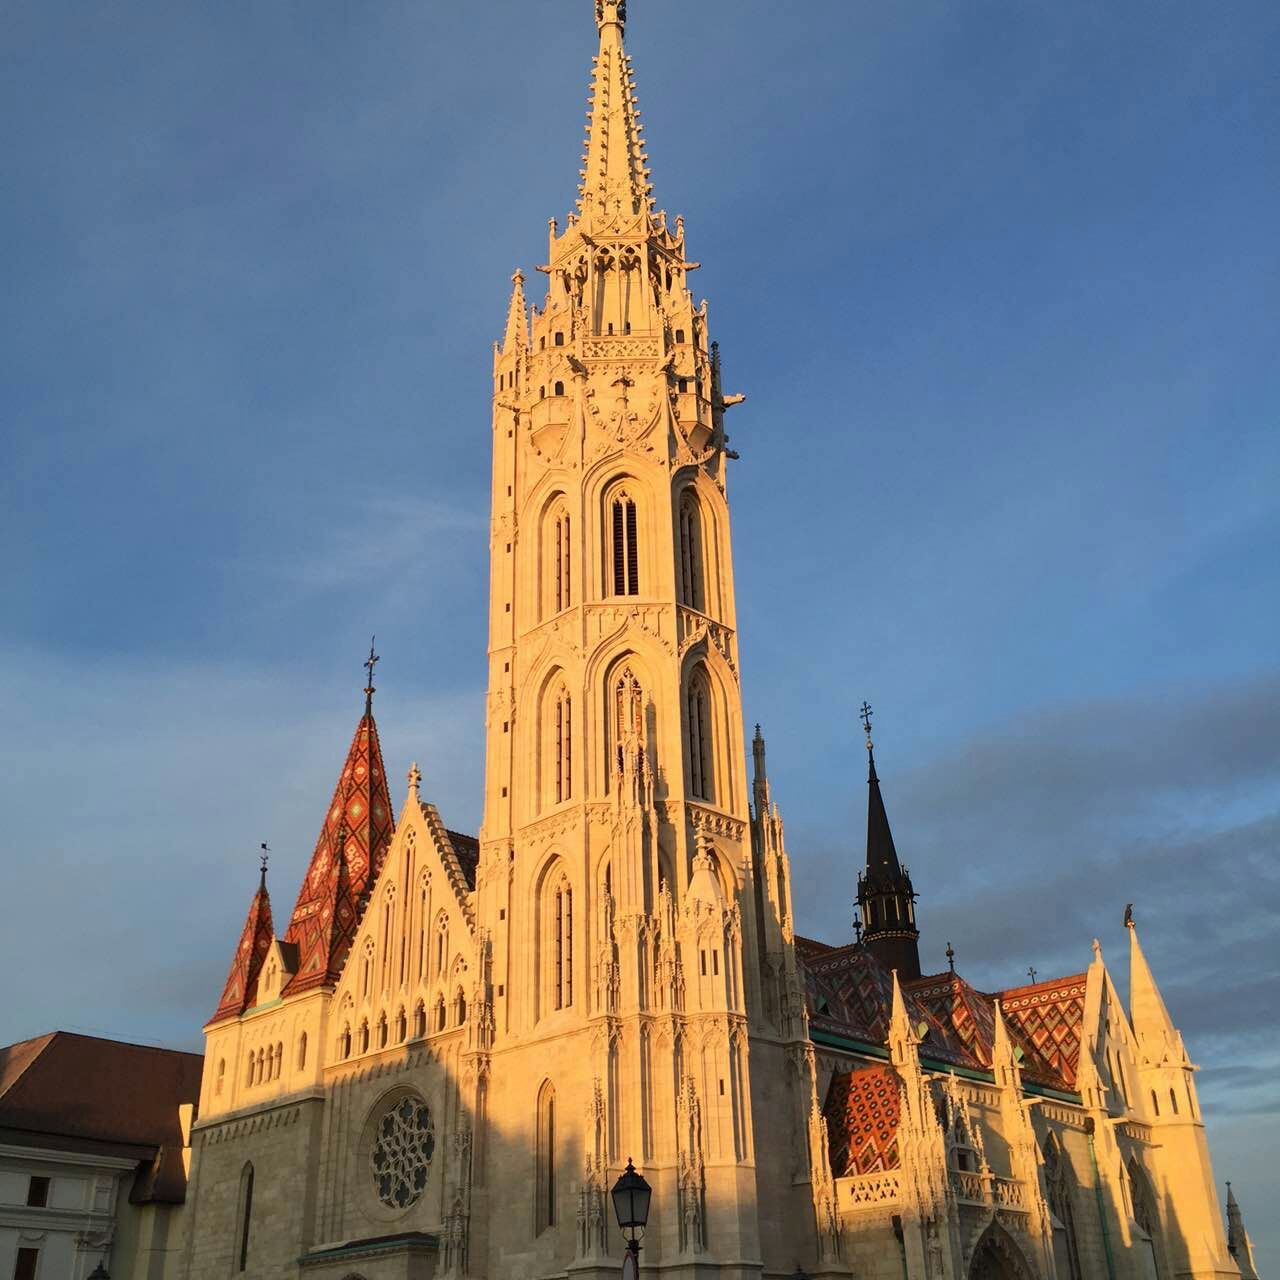 Matthias church, again